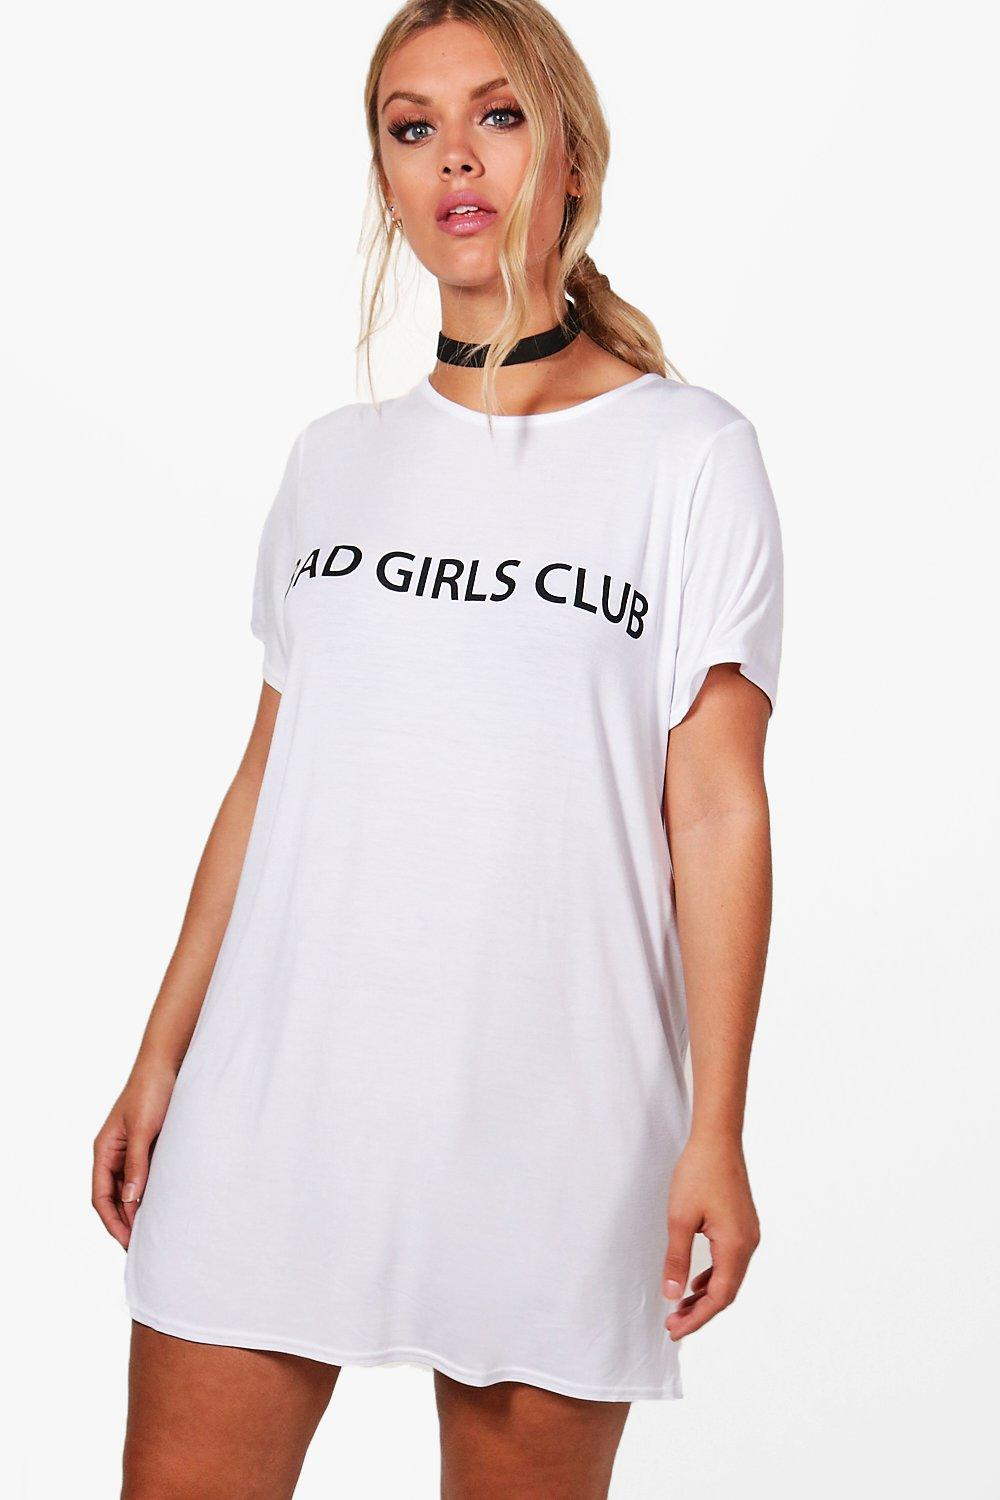 special promotion super specials run shoes Plus Liv Oversized Bad Girls Club Slogan T-Shirt Dress | Boohoo